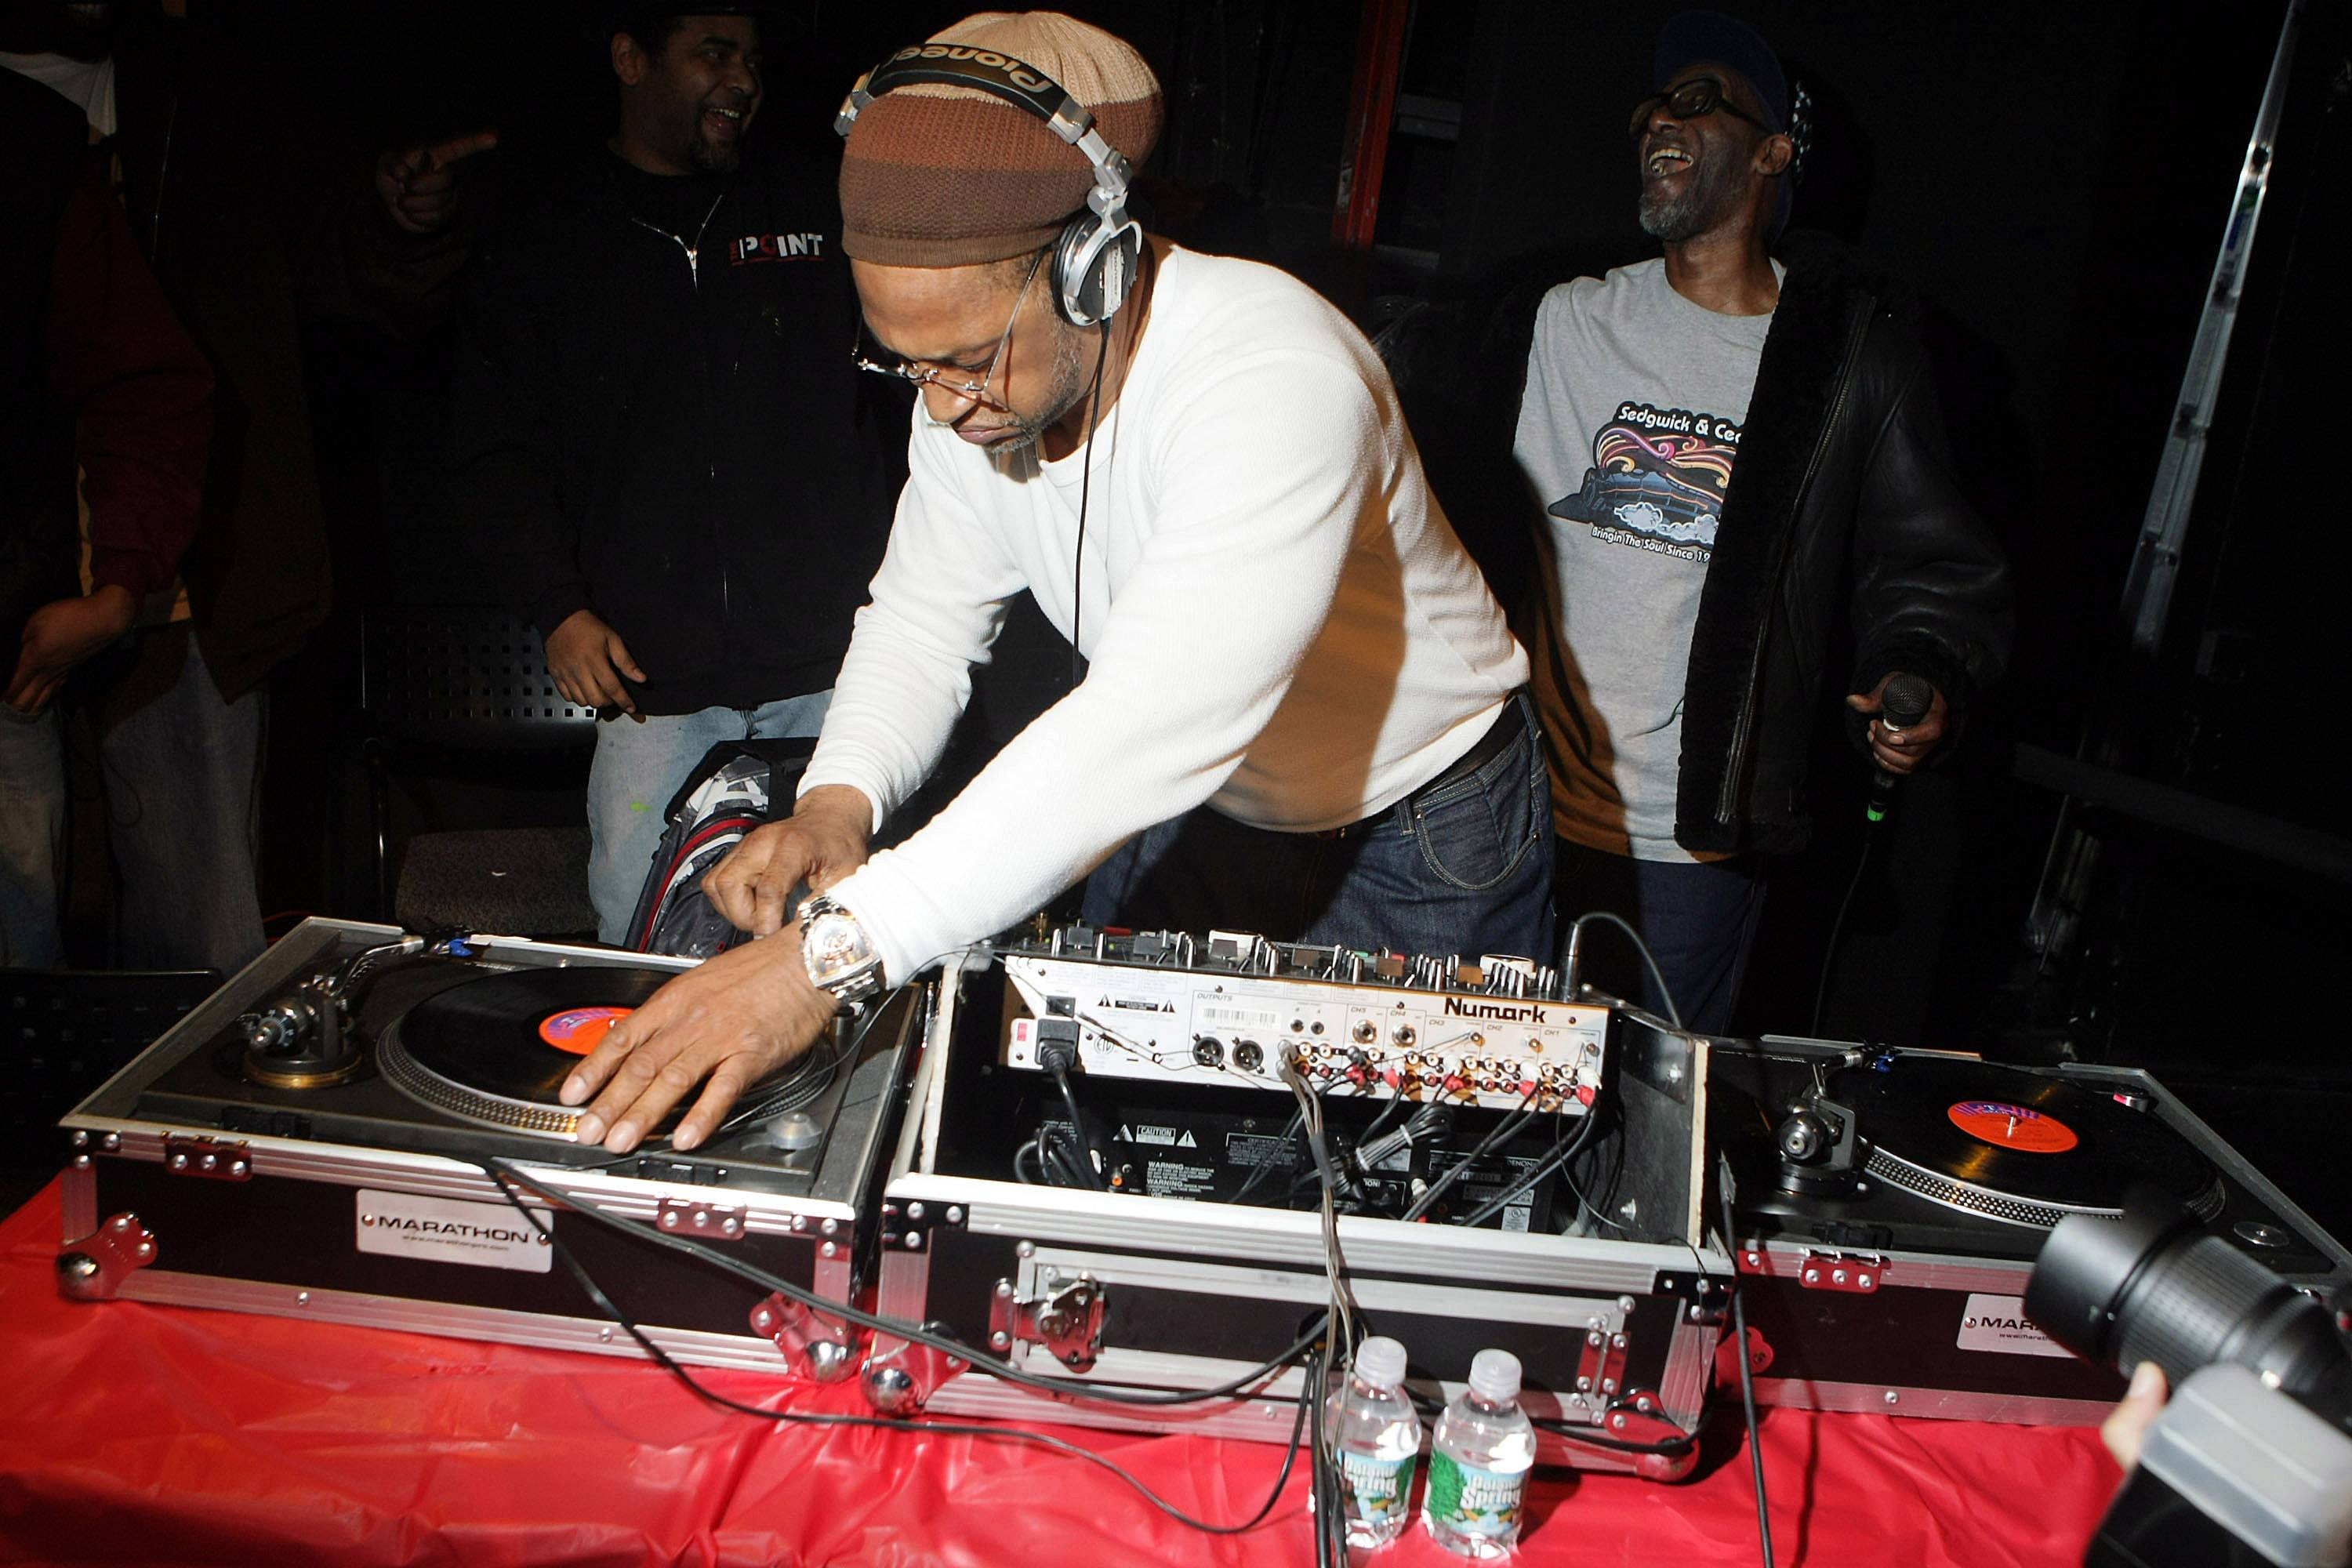 DJ Kool Herc - DJ Kool Herc is understood to be the father of hip hop. That's quite a title, but it's one that's well-deserved, as the Jamaican-born, Bronx-raised legend created break beats, which would serve as a launching pad for the music and culture.(Photo: WENN.com)